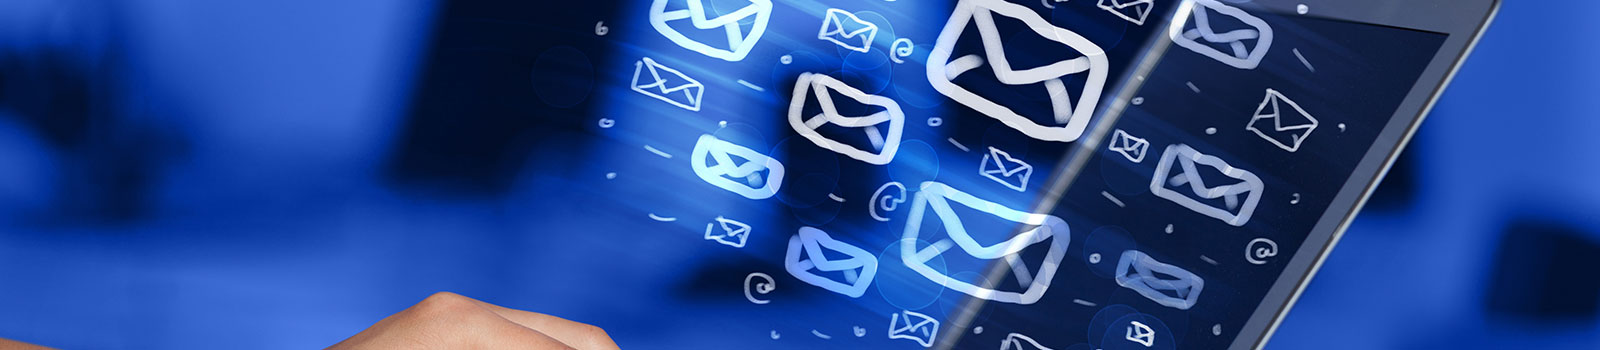 email marketing Birmingham, email marketing Solihull, email marketing campaign, email marketing strategy, designed email shots